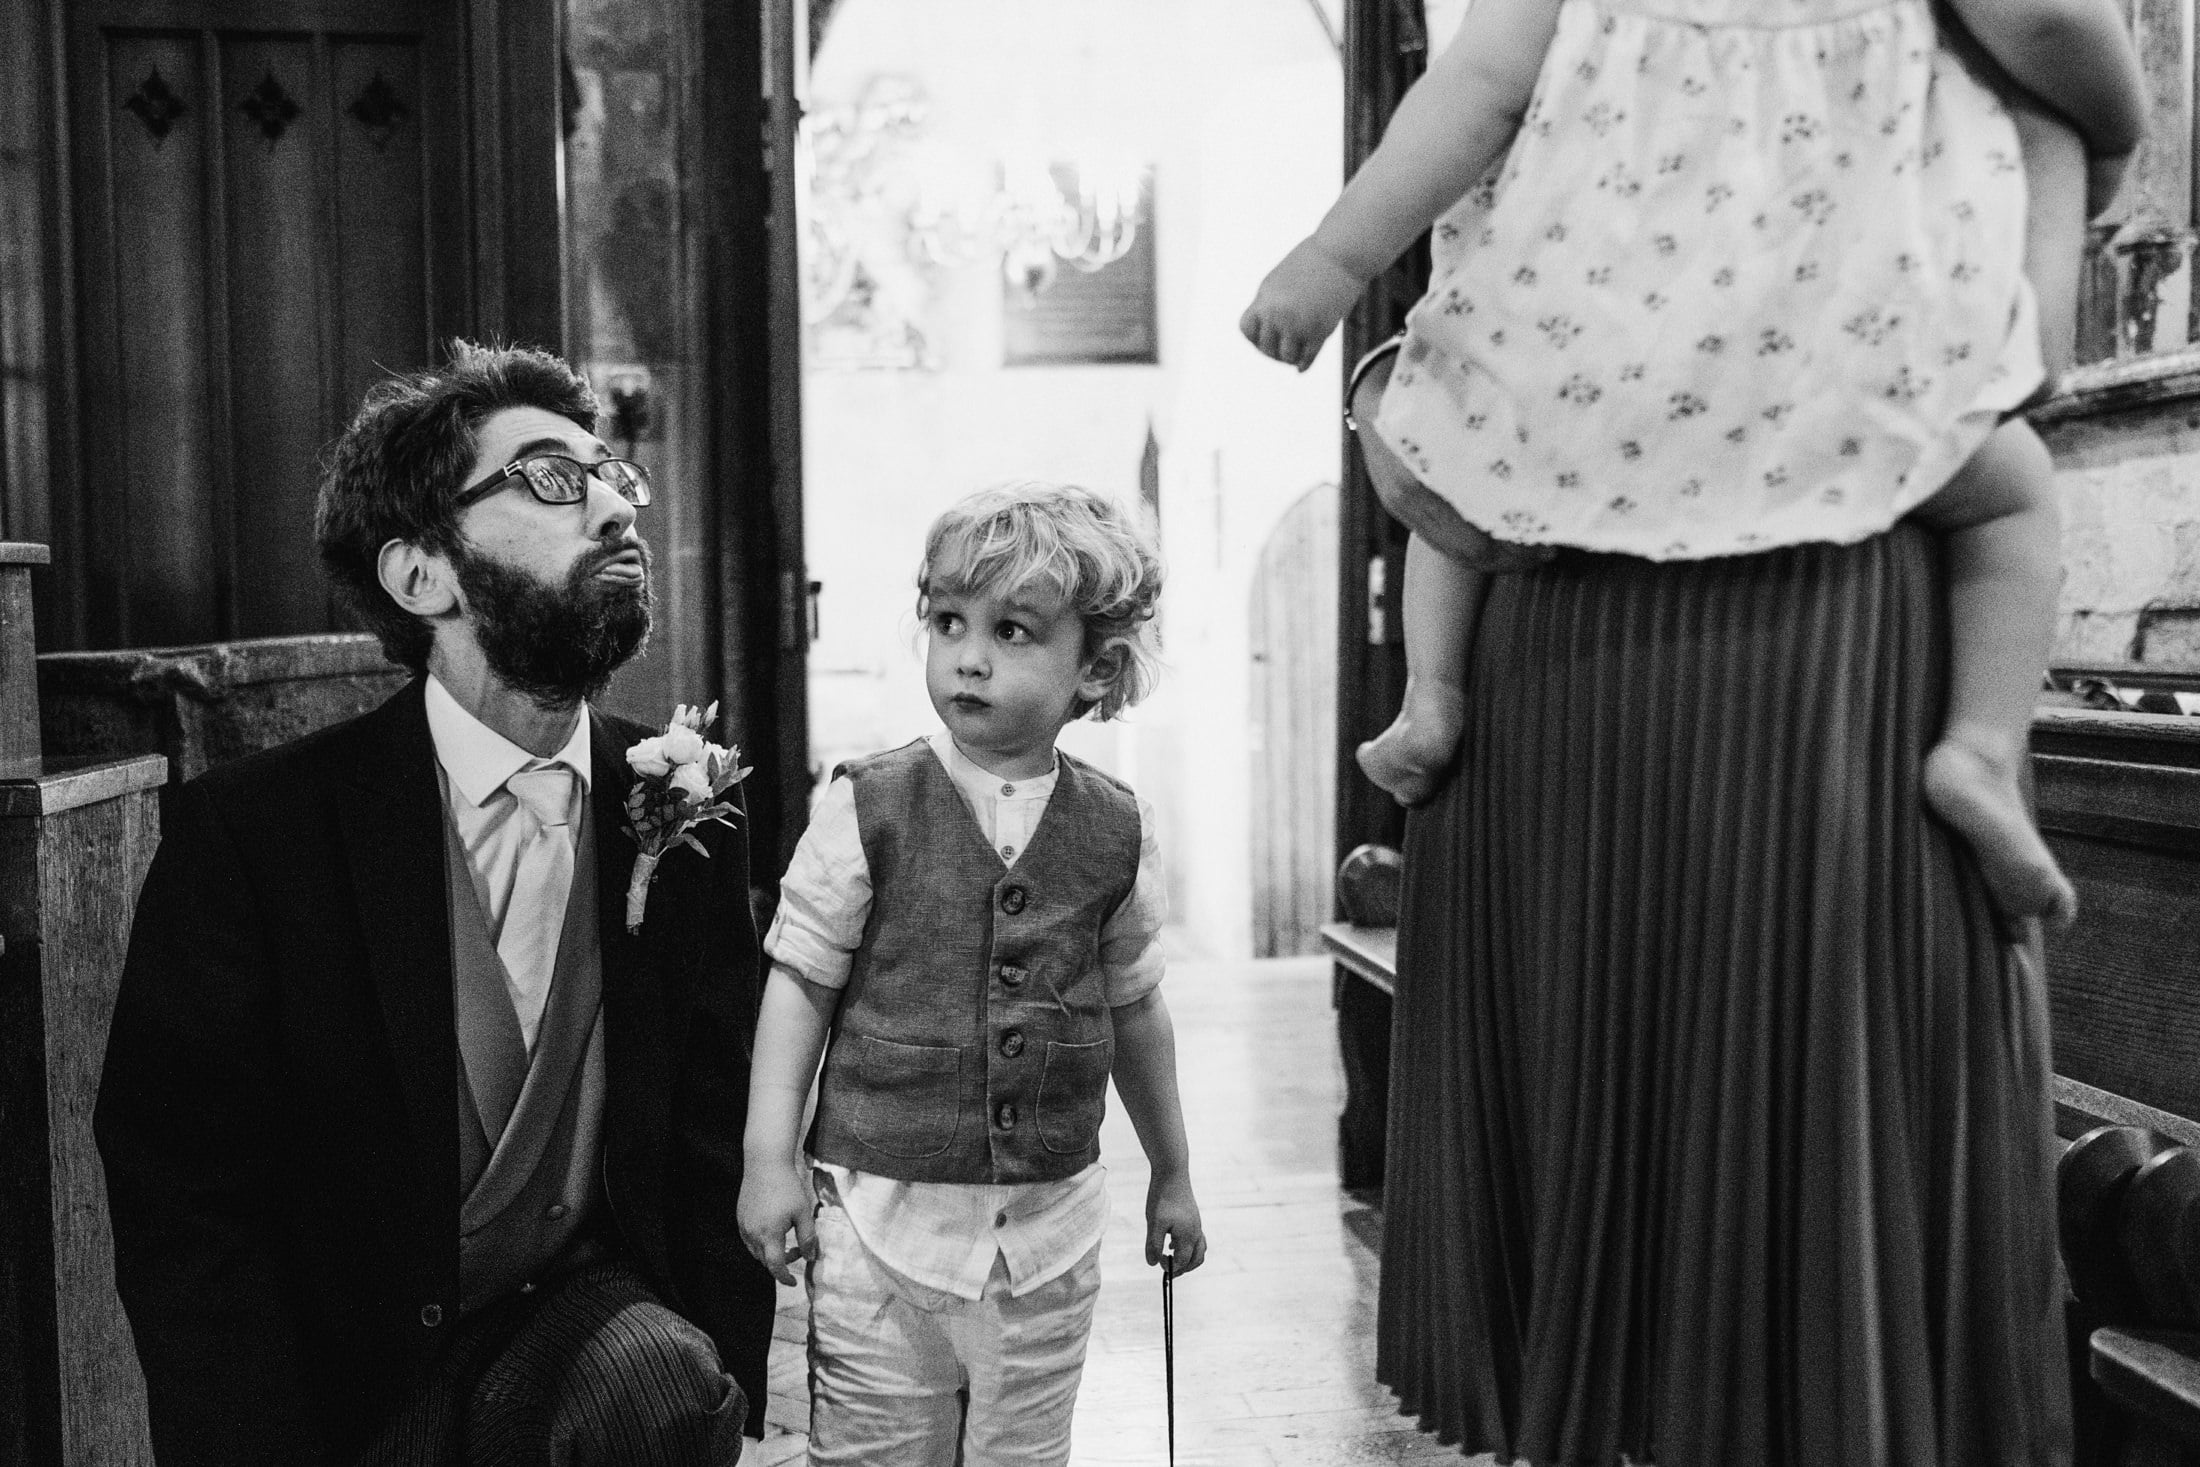 Groomsman crouches beside a little boy in a London church wedding. On the right we see the legs of a little girl being held in a woman's arms